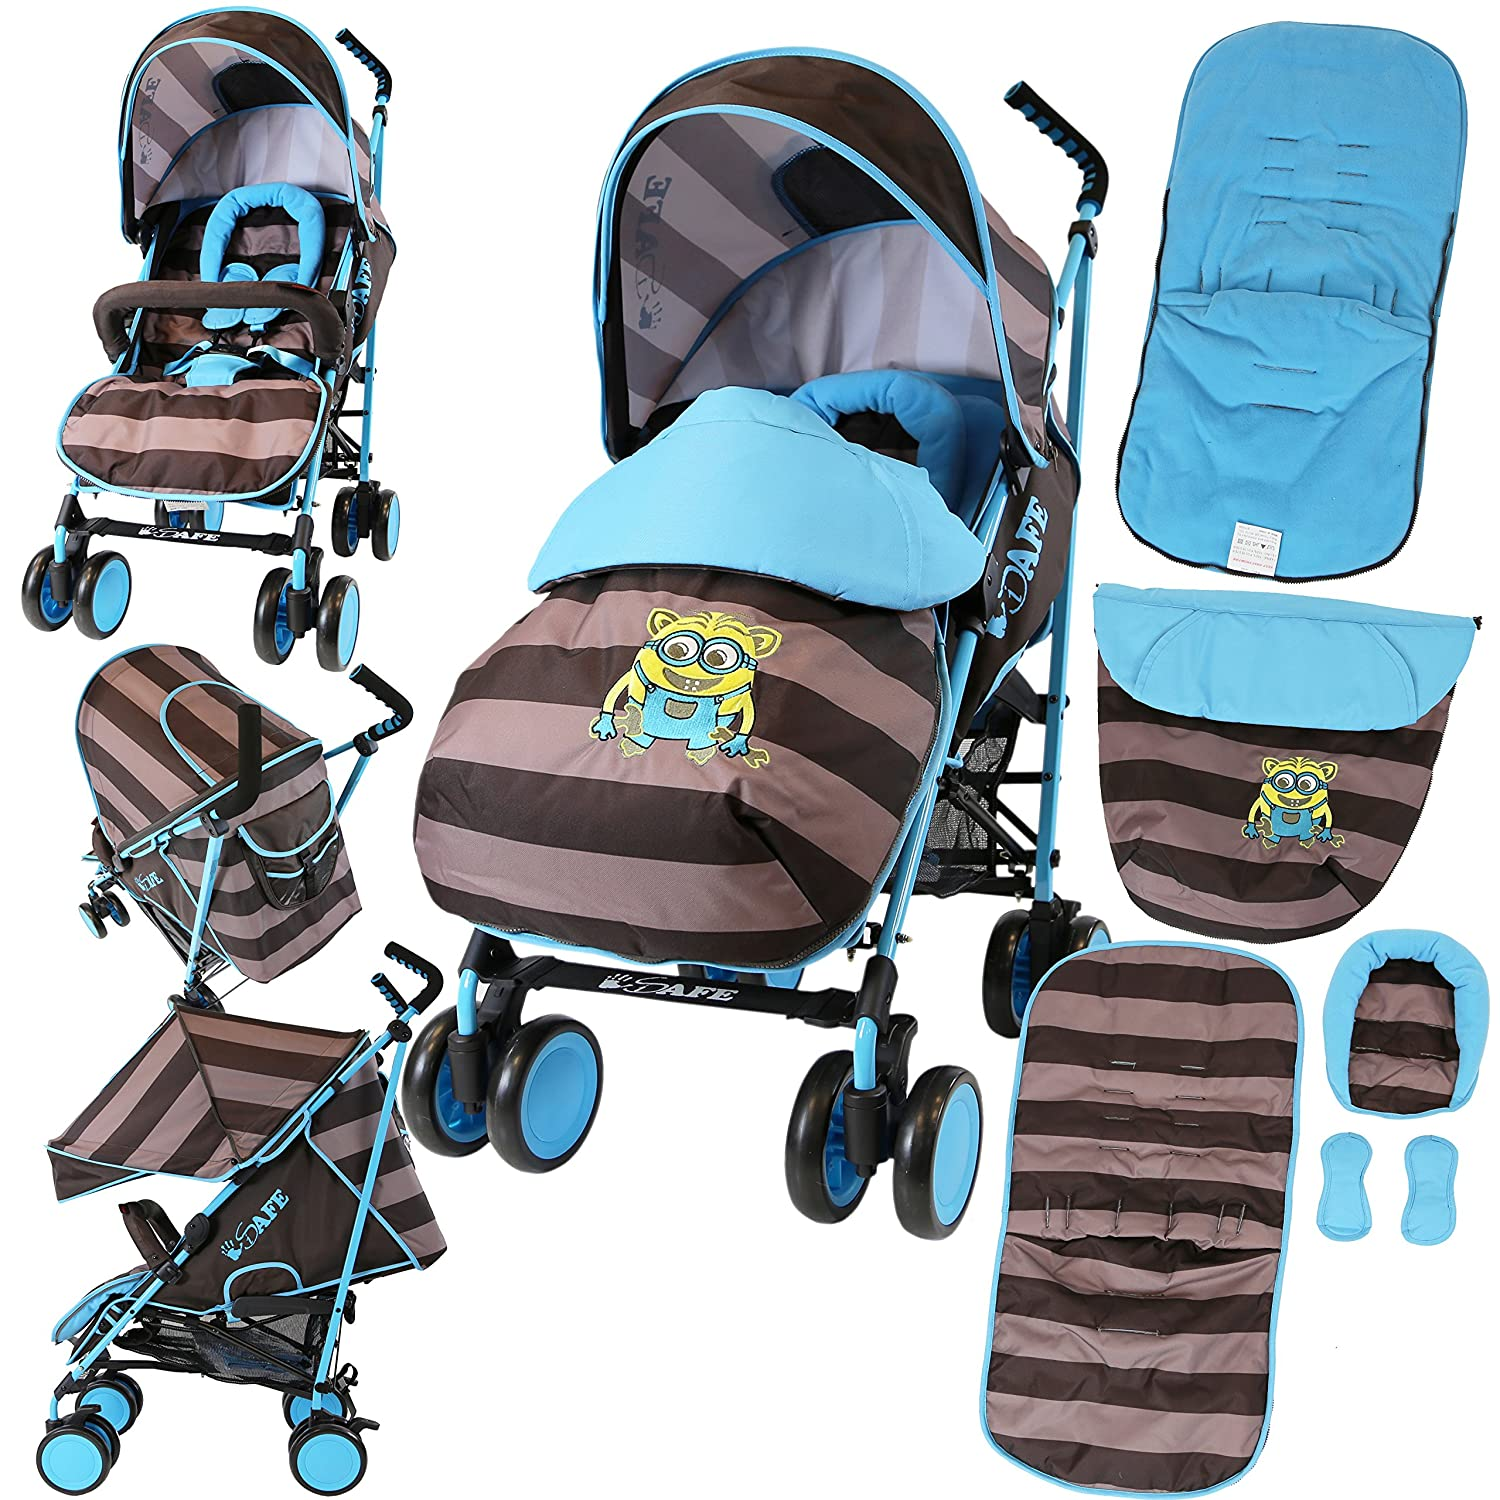 iSafe Stroller - iDiD iT Design Complete with Footmuff Headhugger, Raincover, Bumper Bar iSafeStrMea